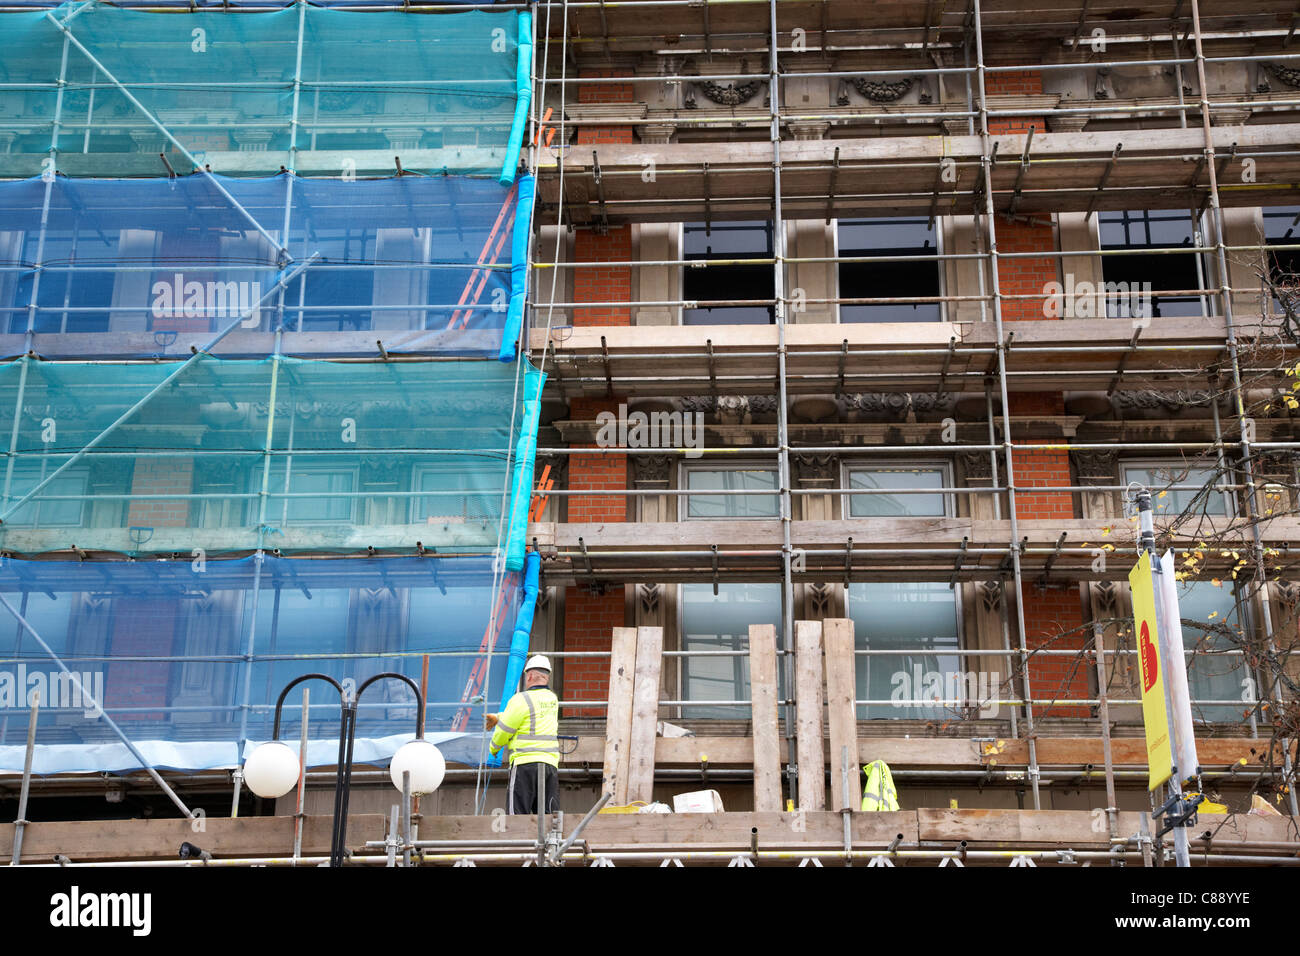 scaffolding being erected around an old building for restoration belfast city centre northern ireland uk - Stock Image